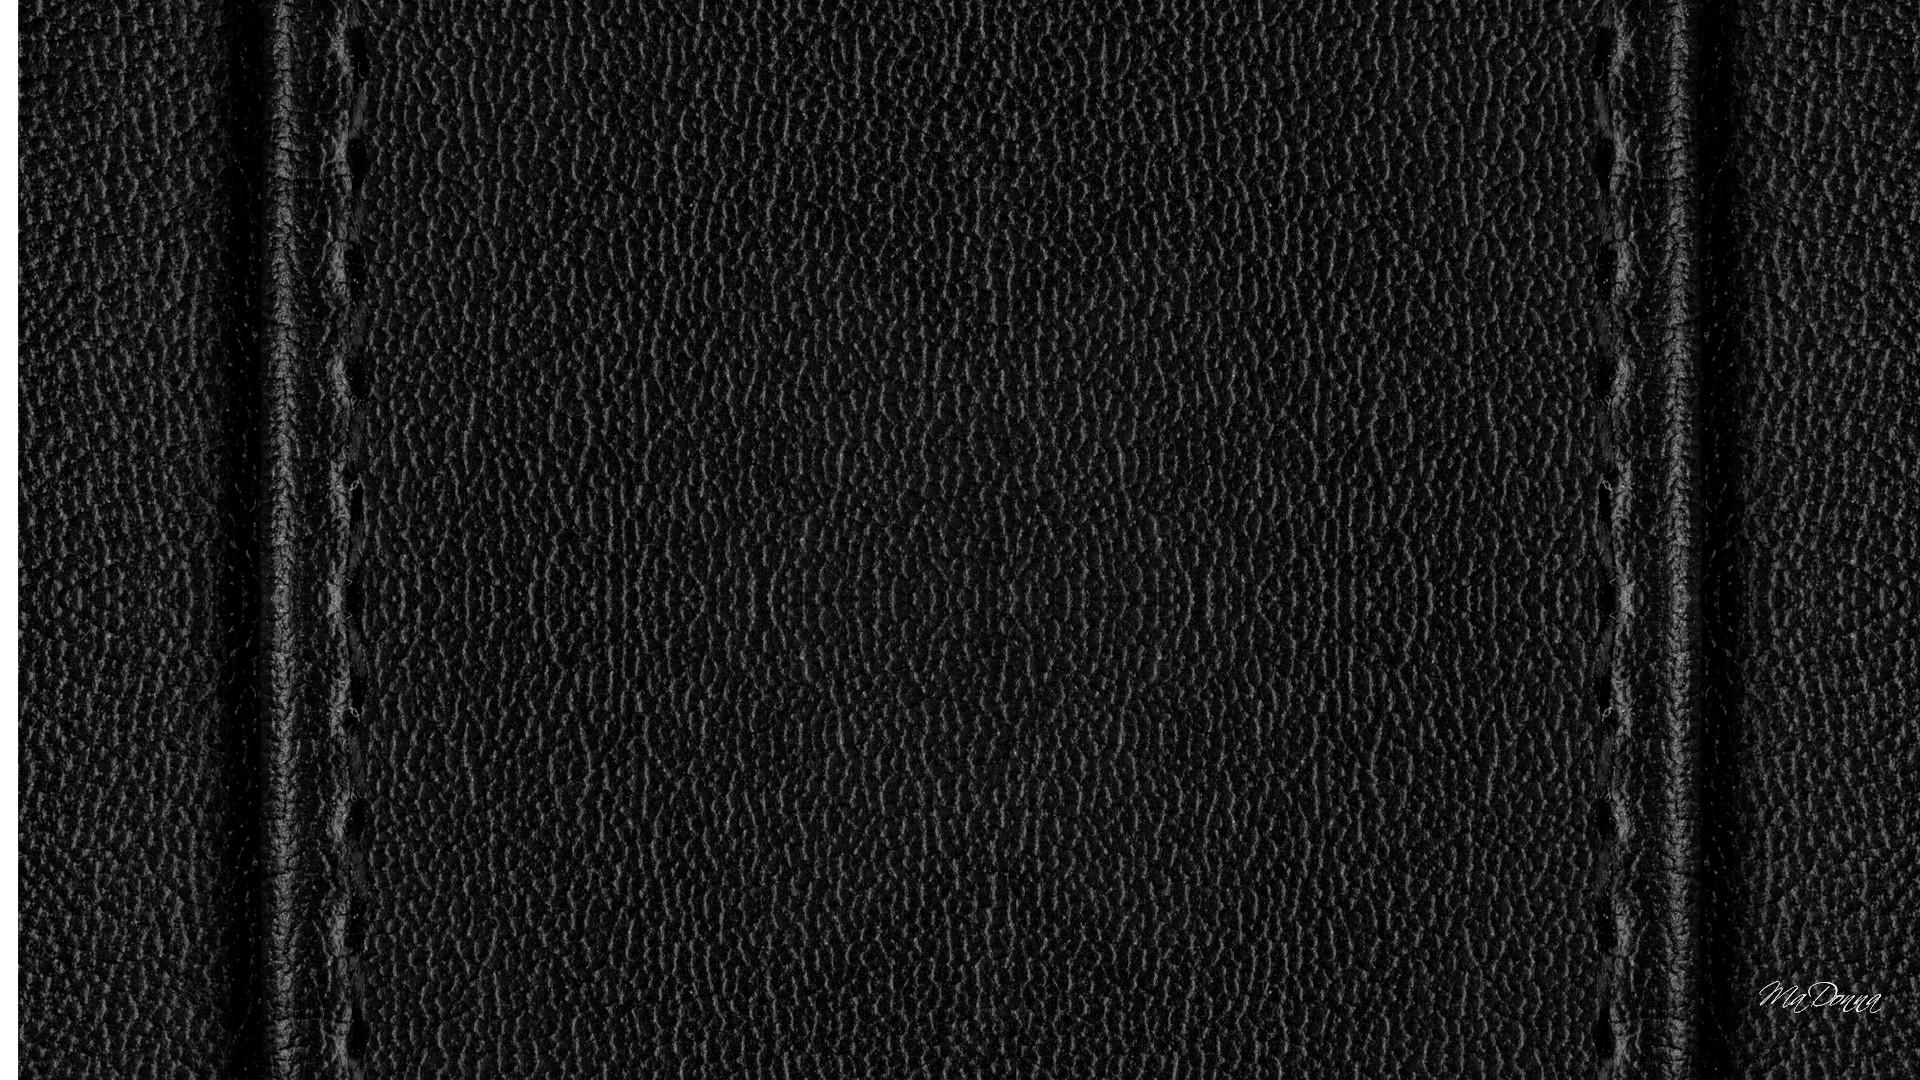 Leather Wallpaper  Android Apps on Google Play 1920x1080